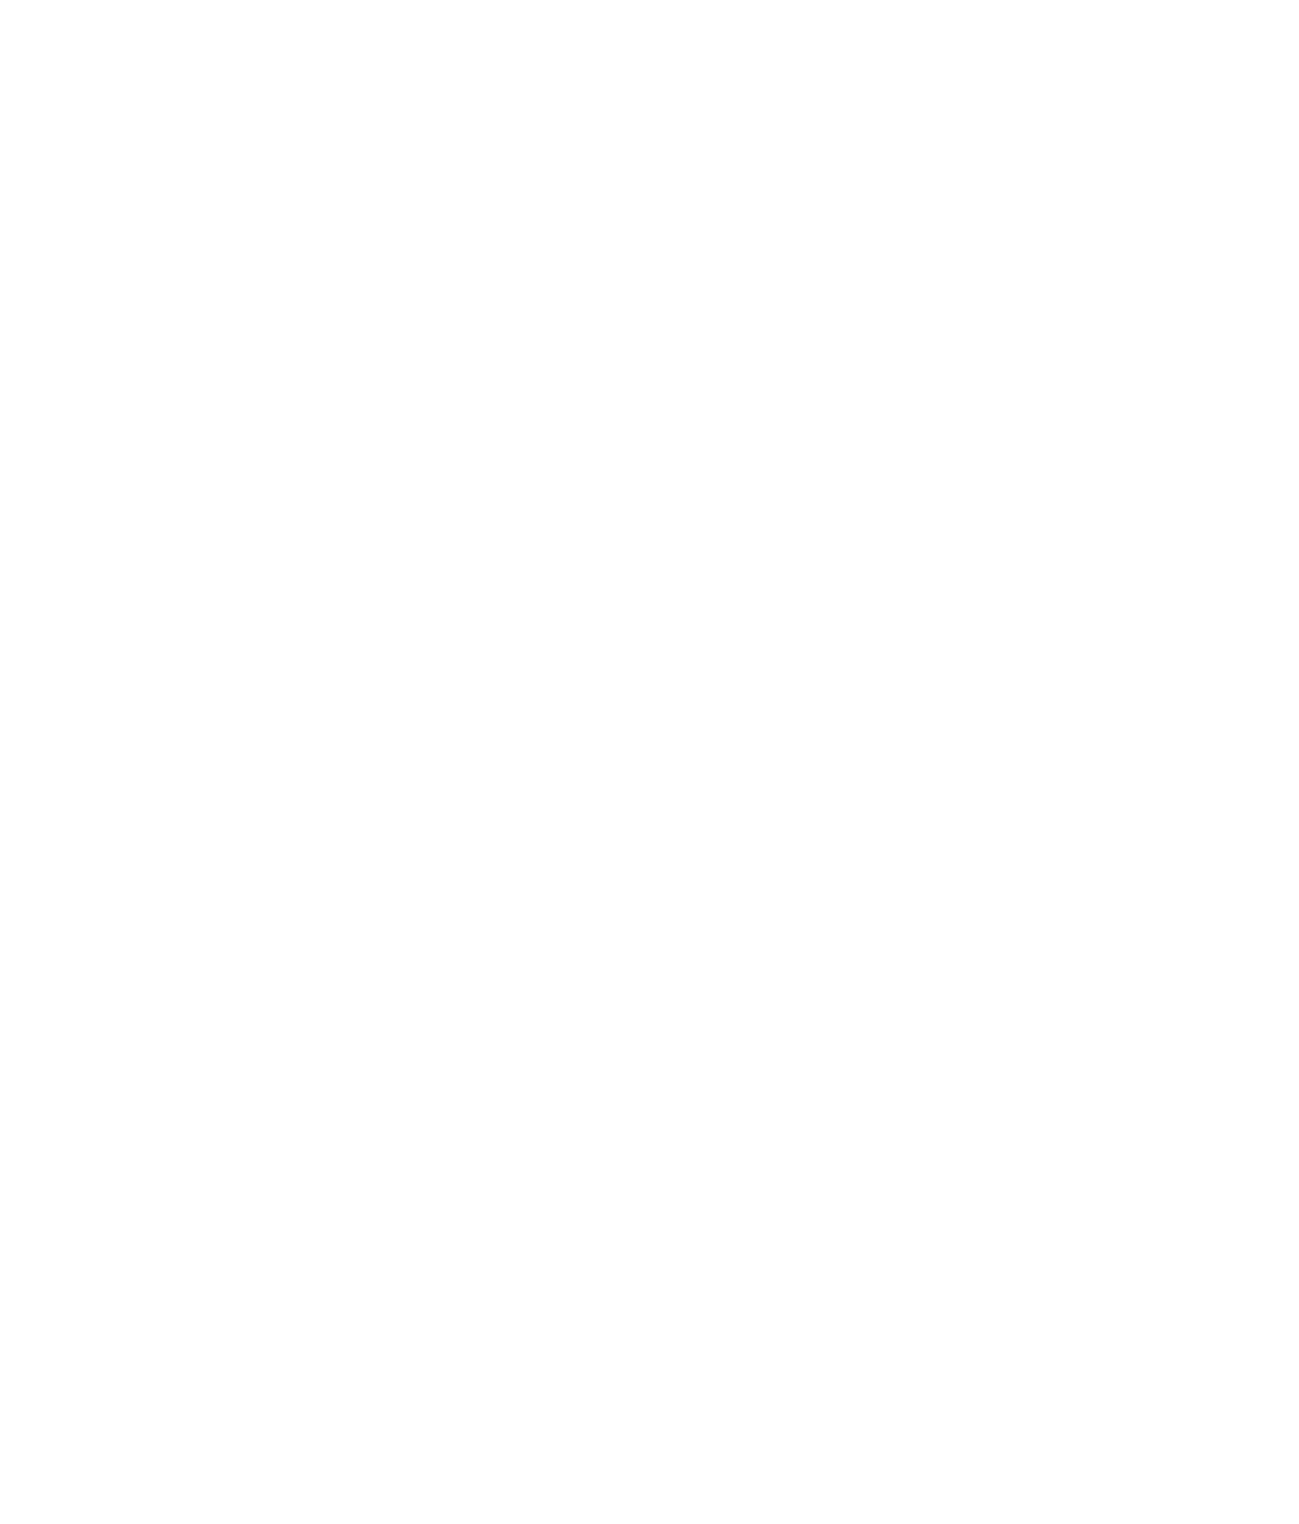 The Queens Award for Voluntary Service